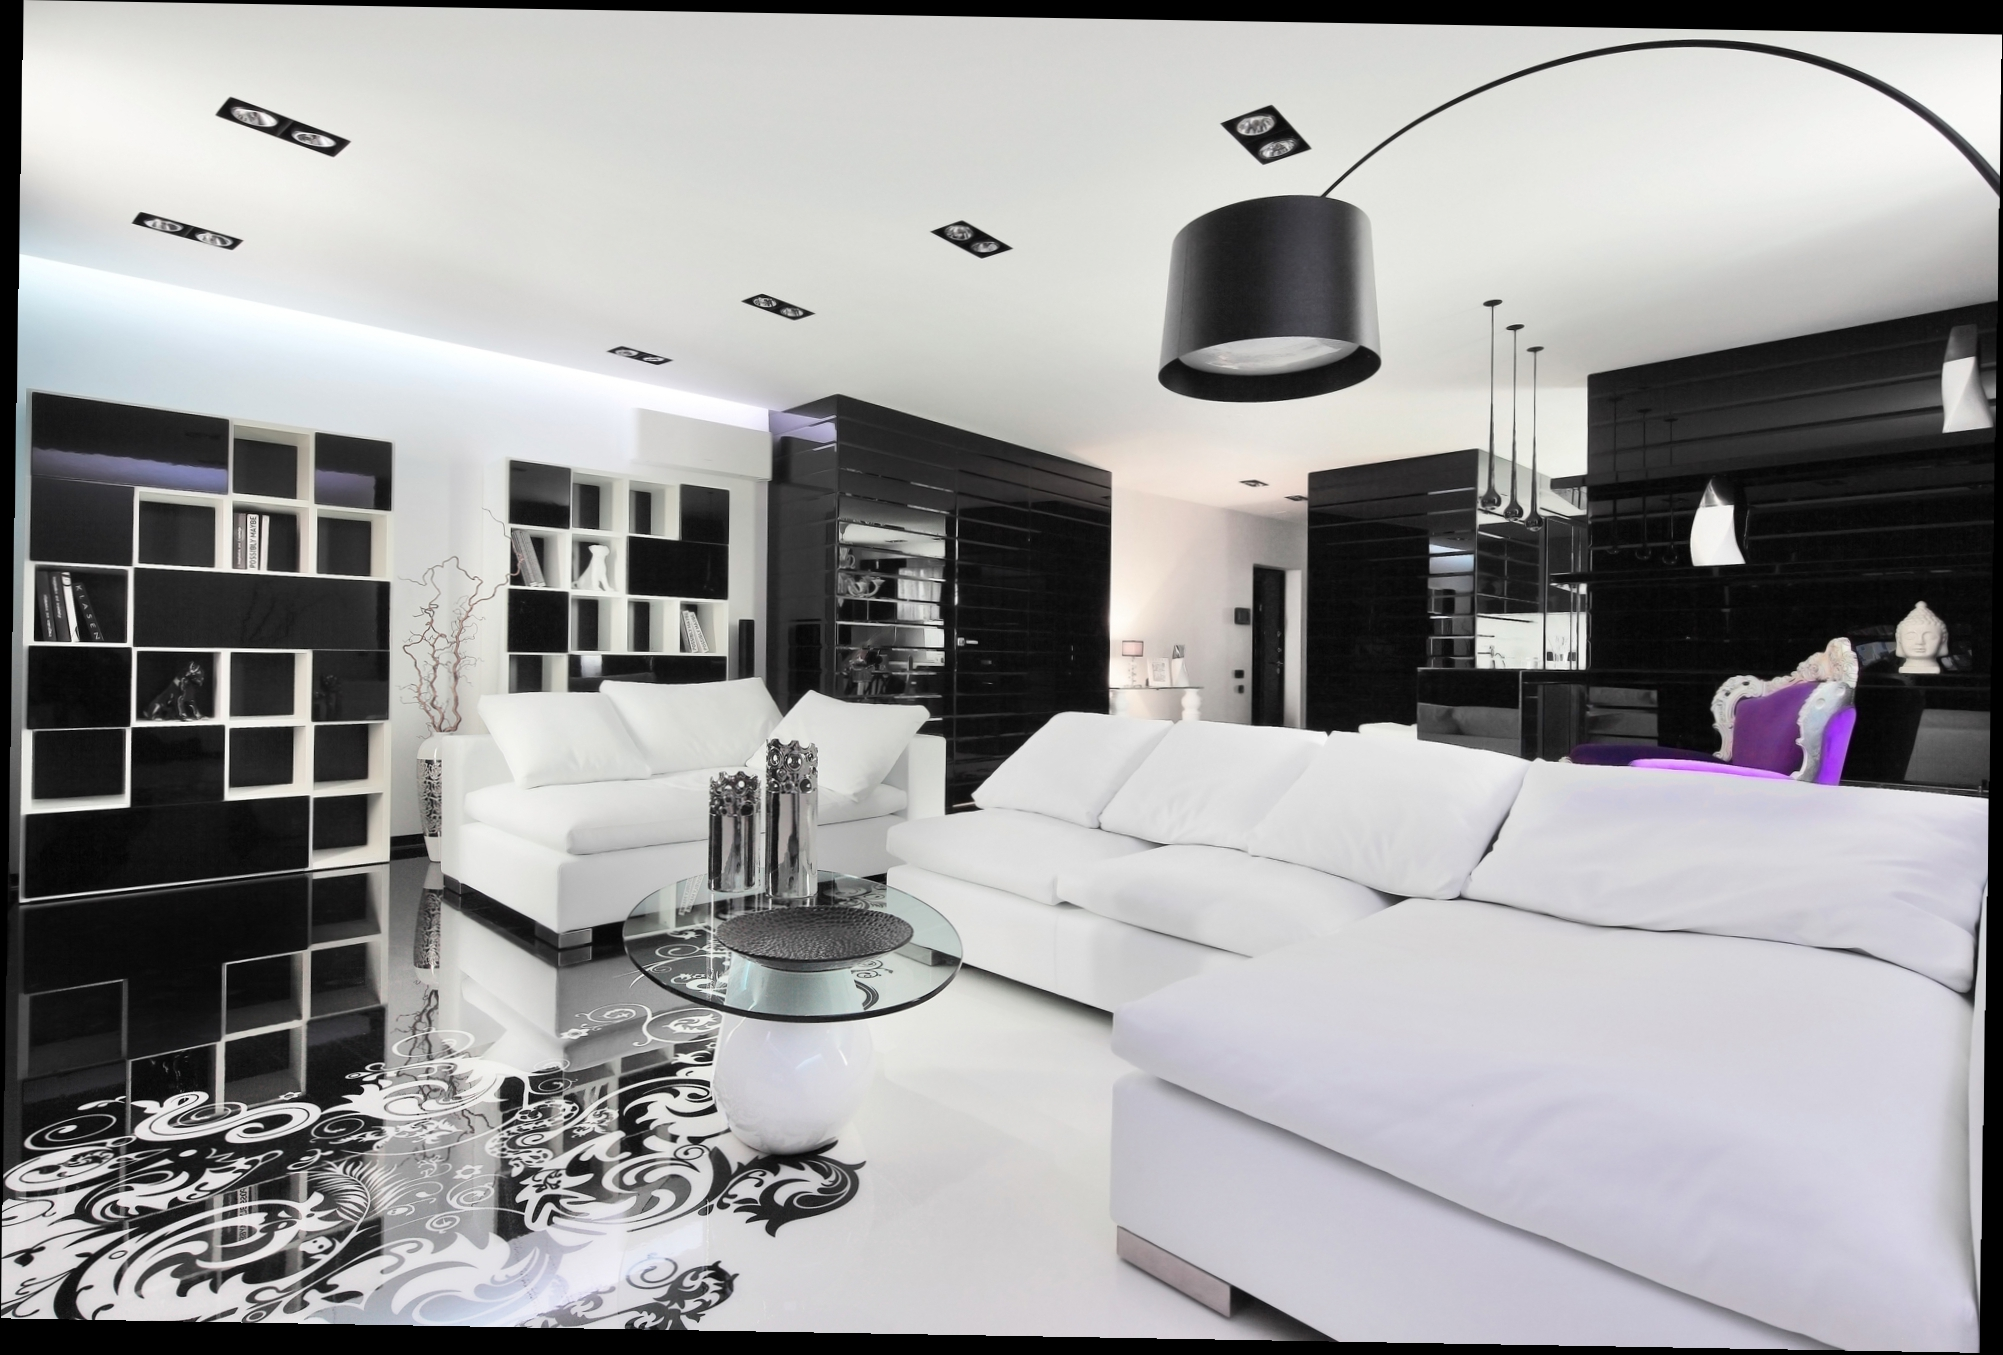 more sleek black and white black and white modern living rooms Best of: Black and White Modern Living Rooms Best of Black and White Modern Living Rooms 2